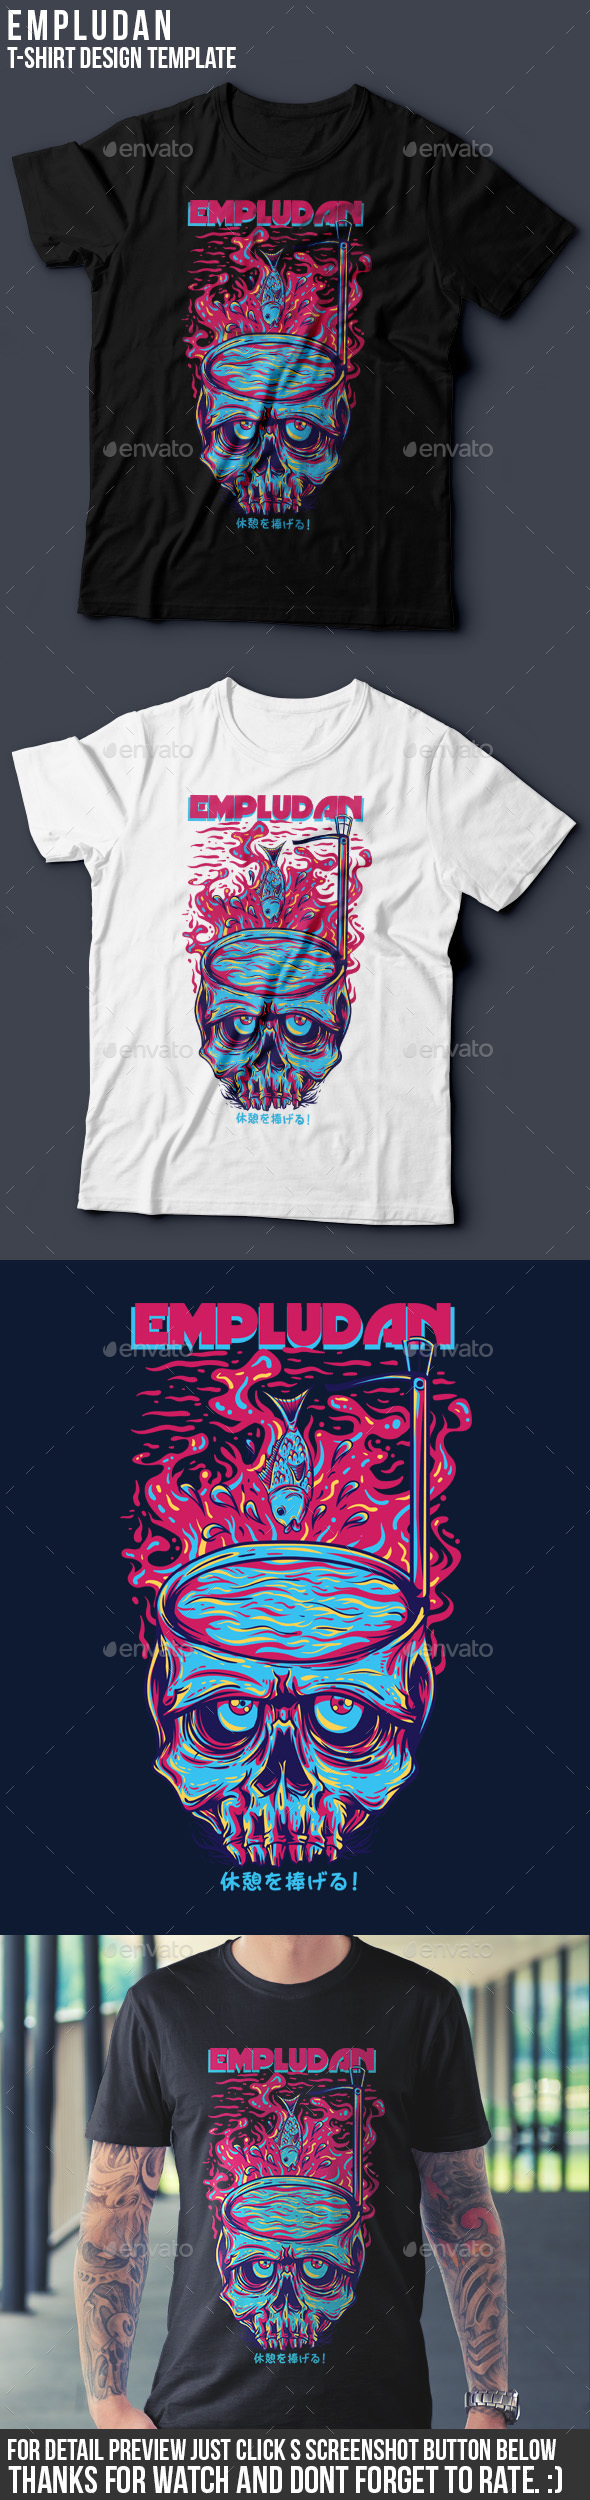 Empludan T-Shirt Design - Funny Designs